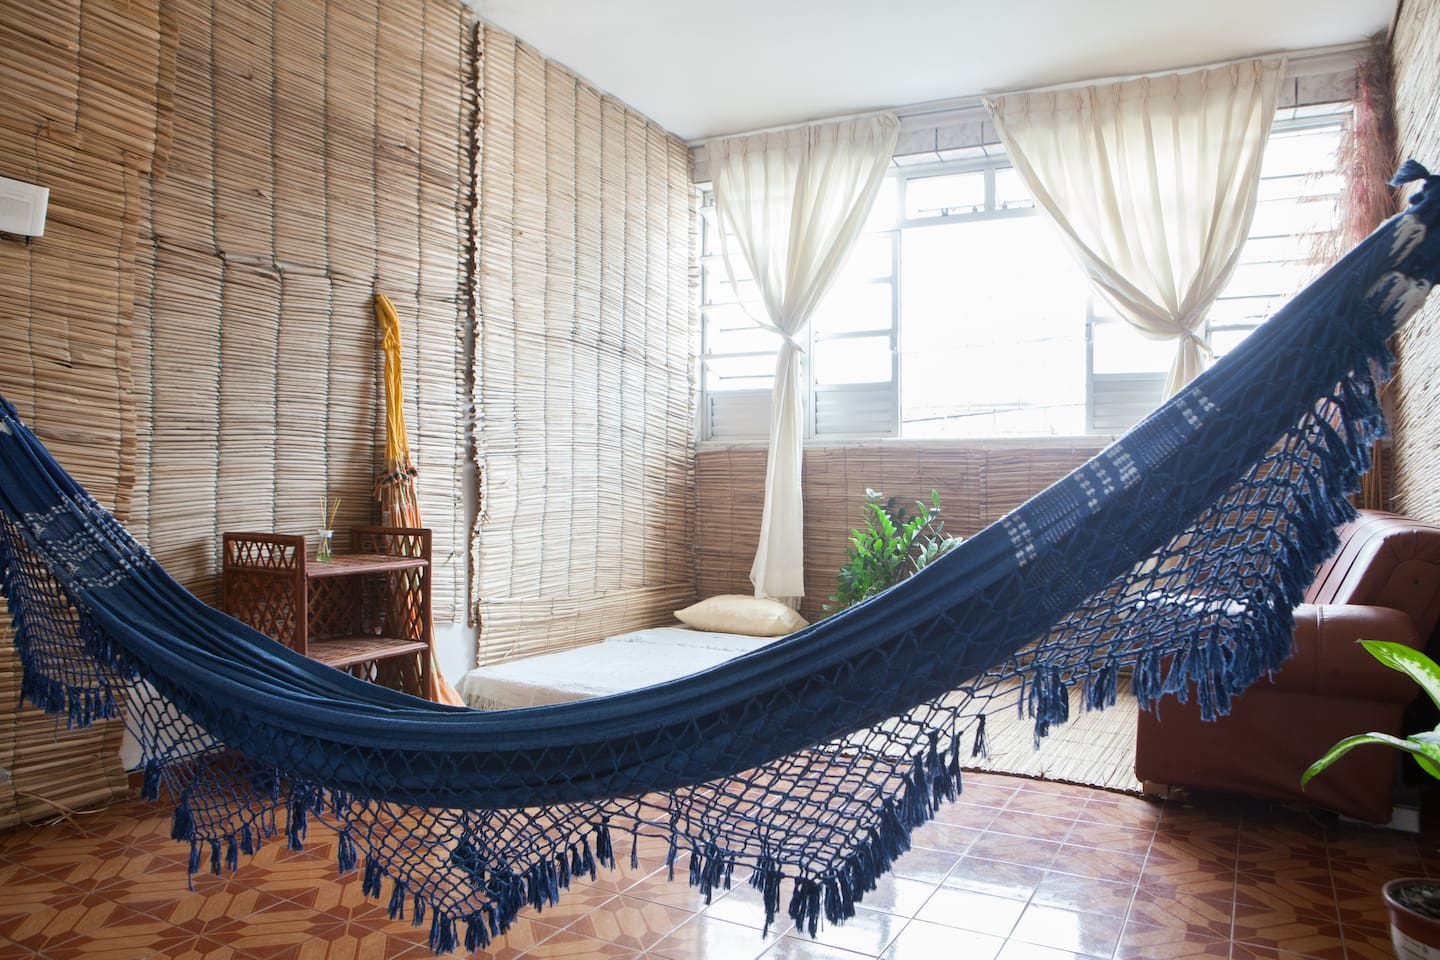 Enjoy a relaxed room with great sunlight and tons of space